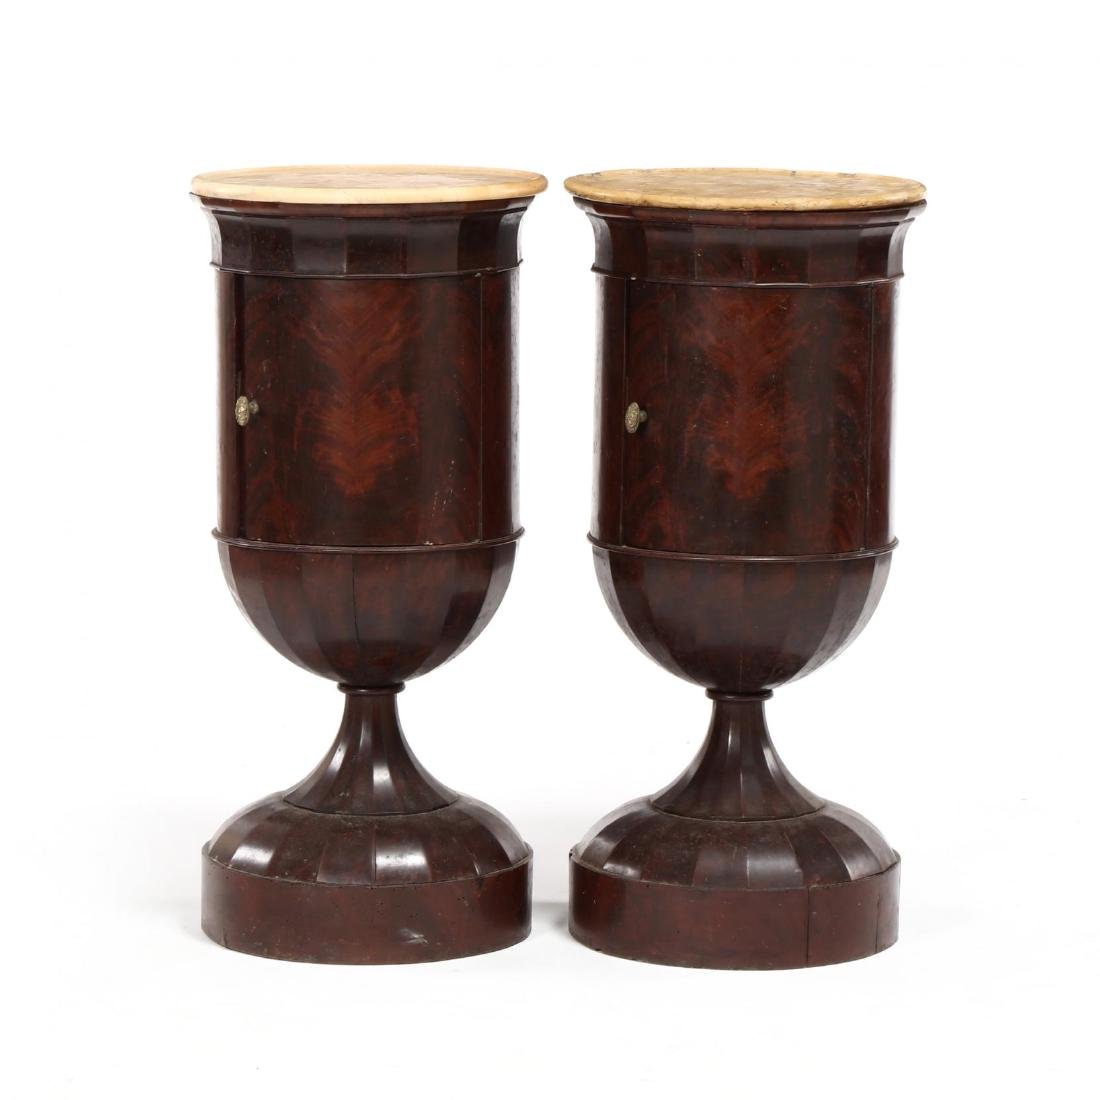 Pair of Neoclassical Barrel Form Side Cabinets